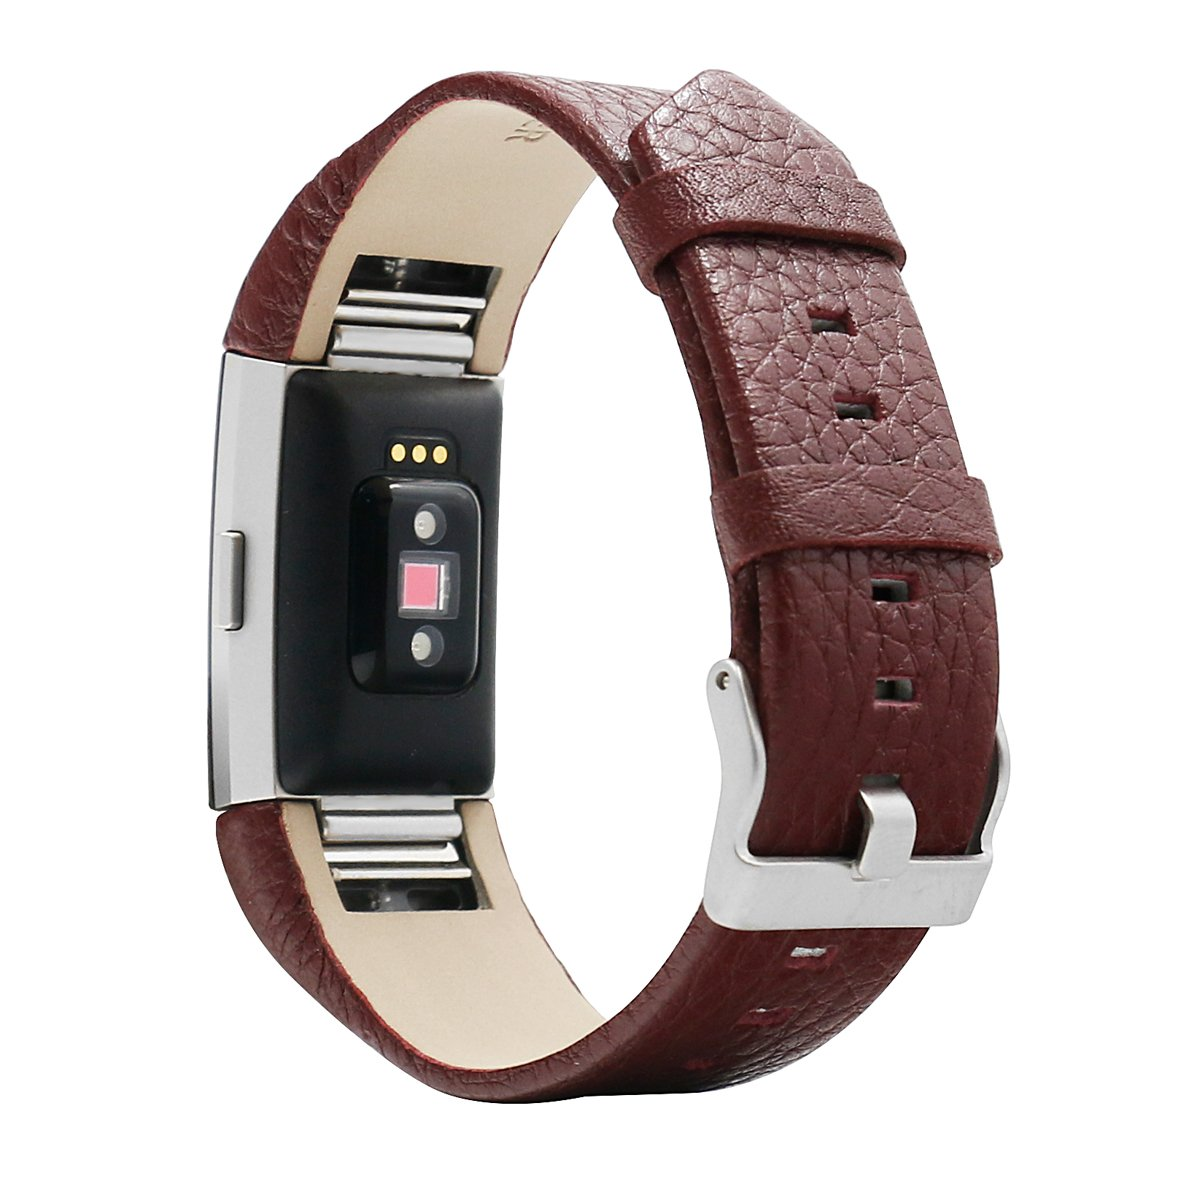 BONSTRAP For Fitbit Charge 2 Watch Genuine Cow Leather Watch Band Watch Strap Pin Buckle Replacement Wristband Brown